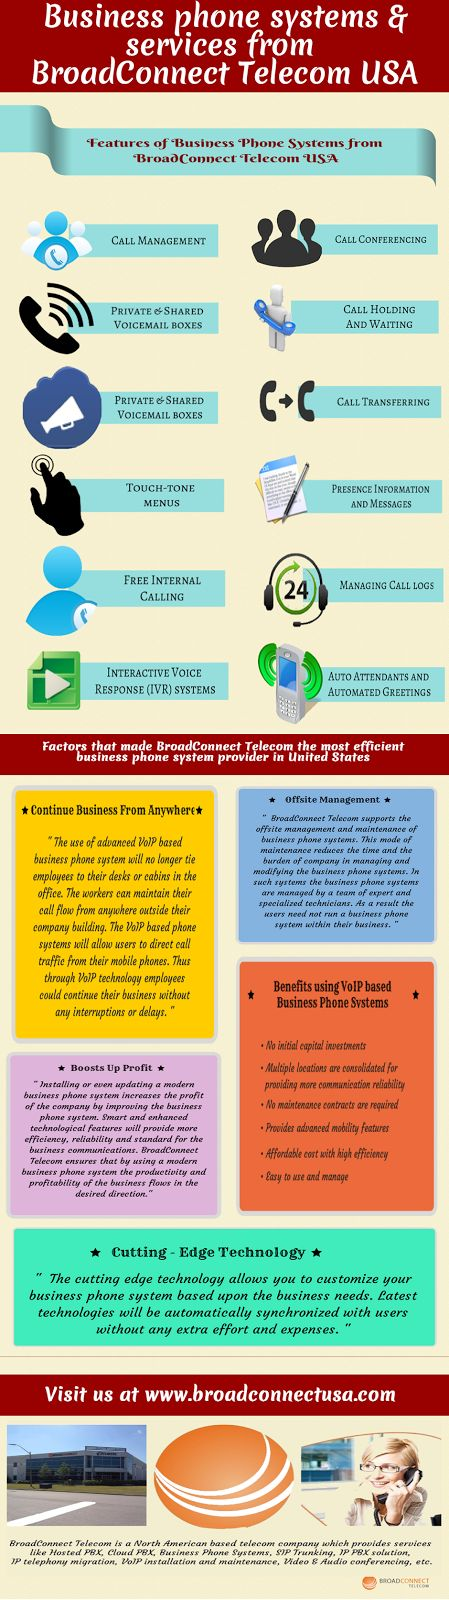 Broadconnect Telecom USA: Infographics on Business Phone System Features from BroadConnect.